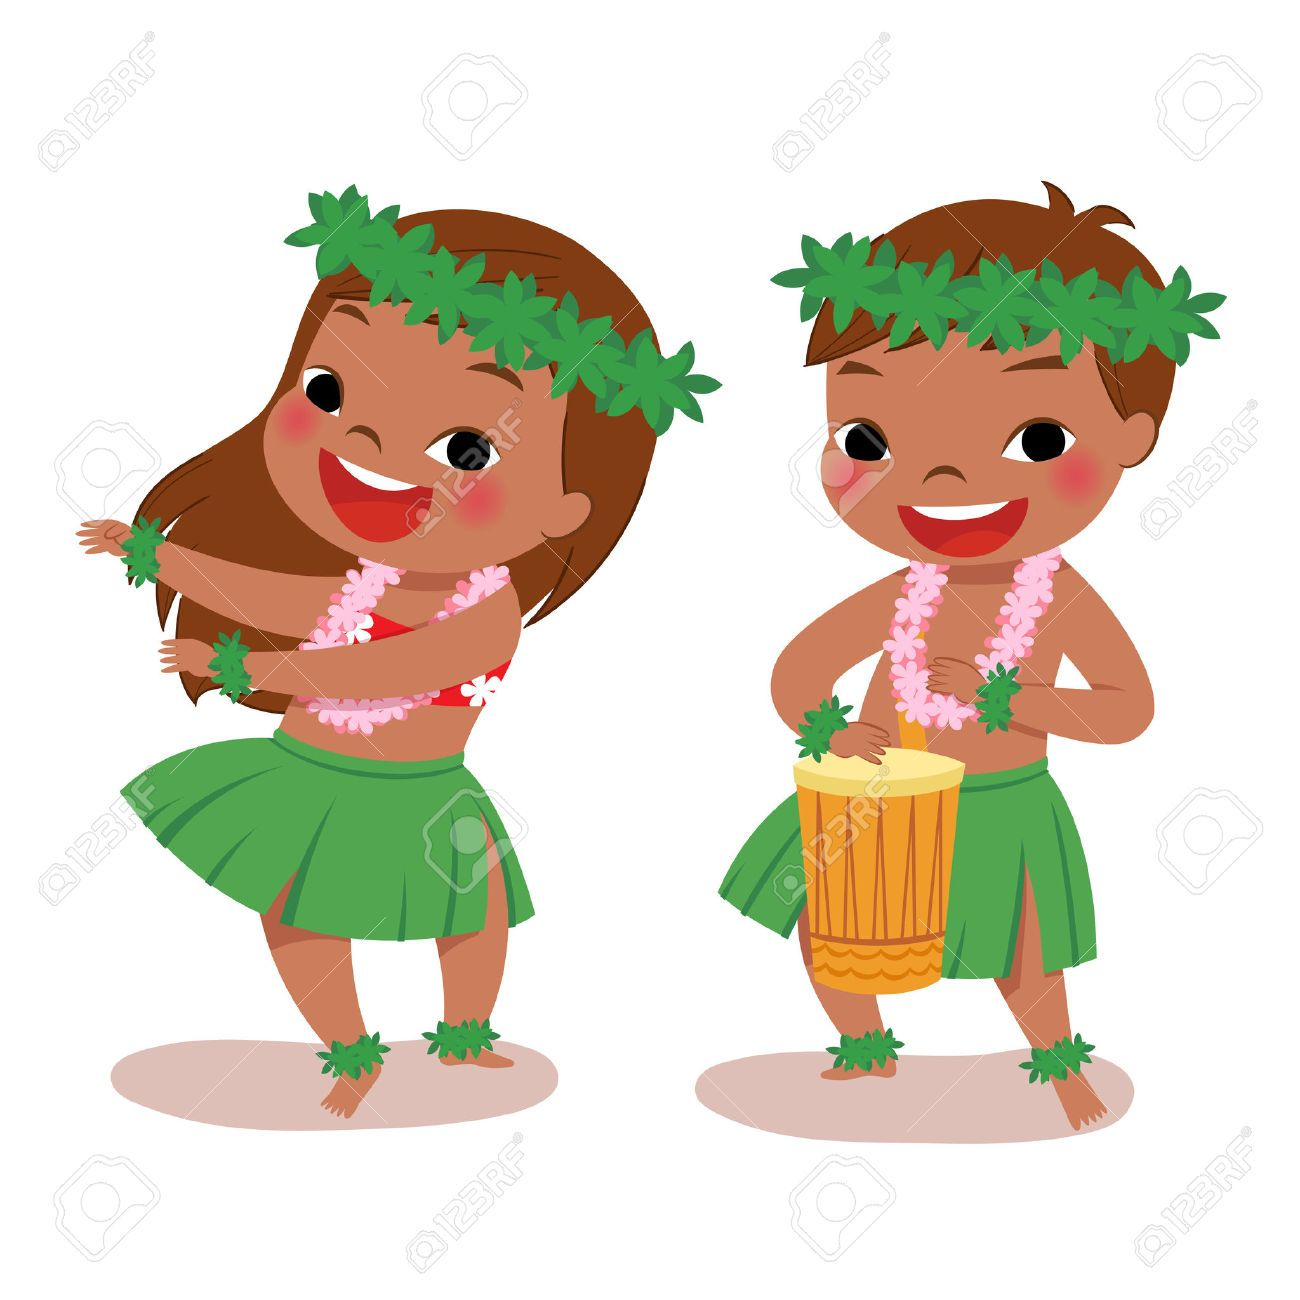 Hawaiian boy clipart clipart free stock hawaiian boy playing drum hawaiian girl hula clipart | summer ... clipart free stock